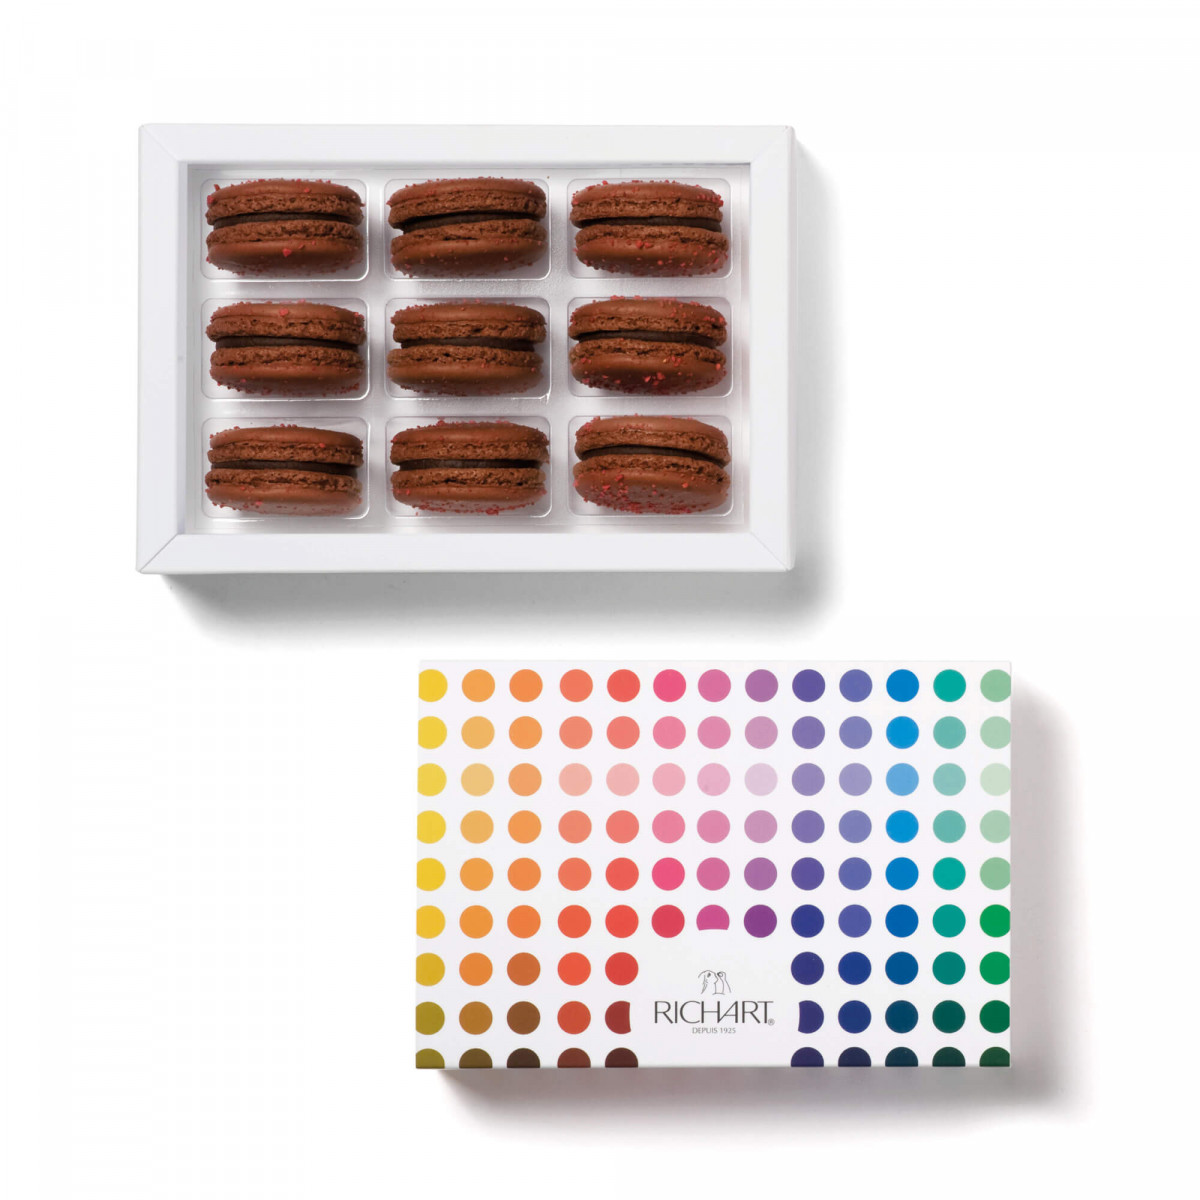 Sambiraja Box of 9 French macarons